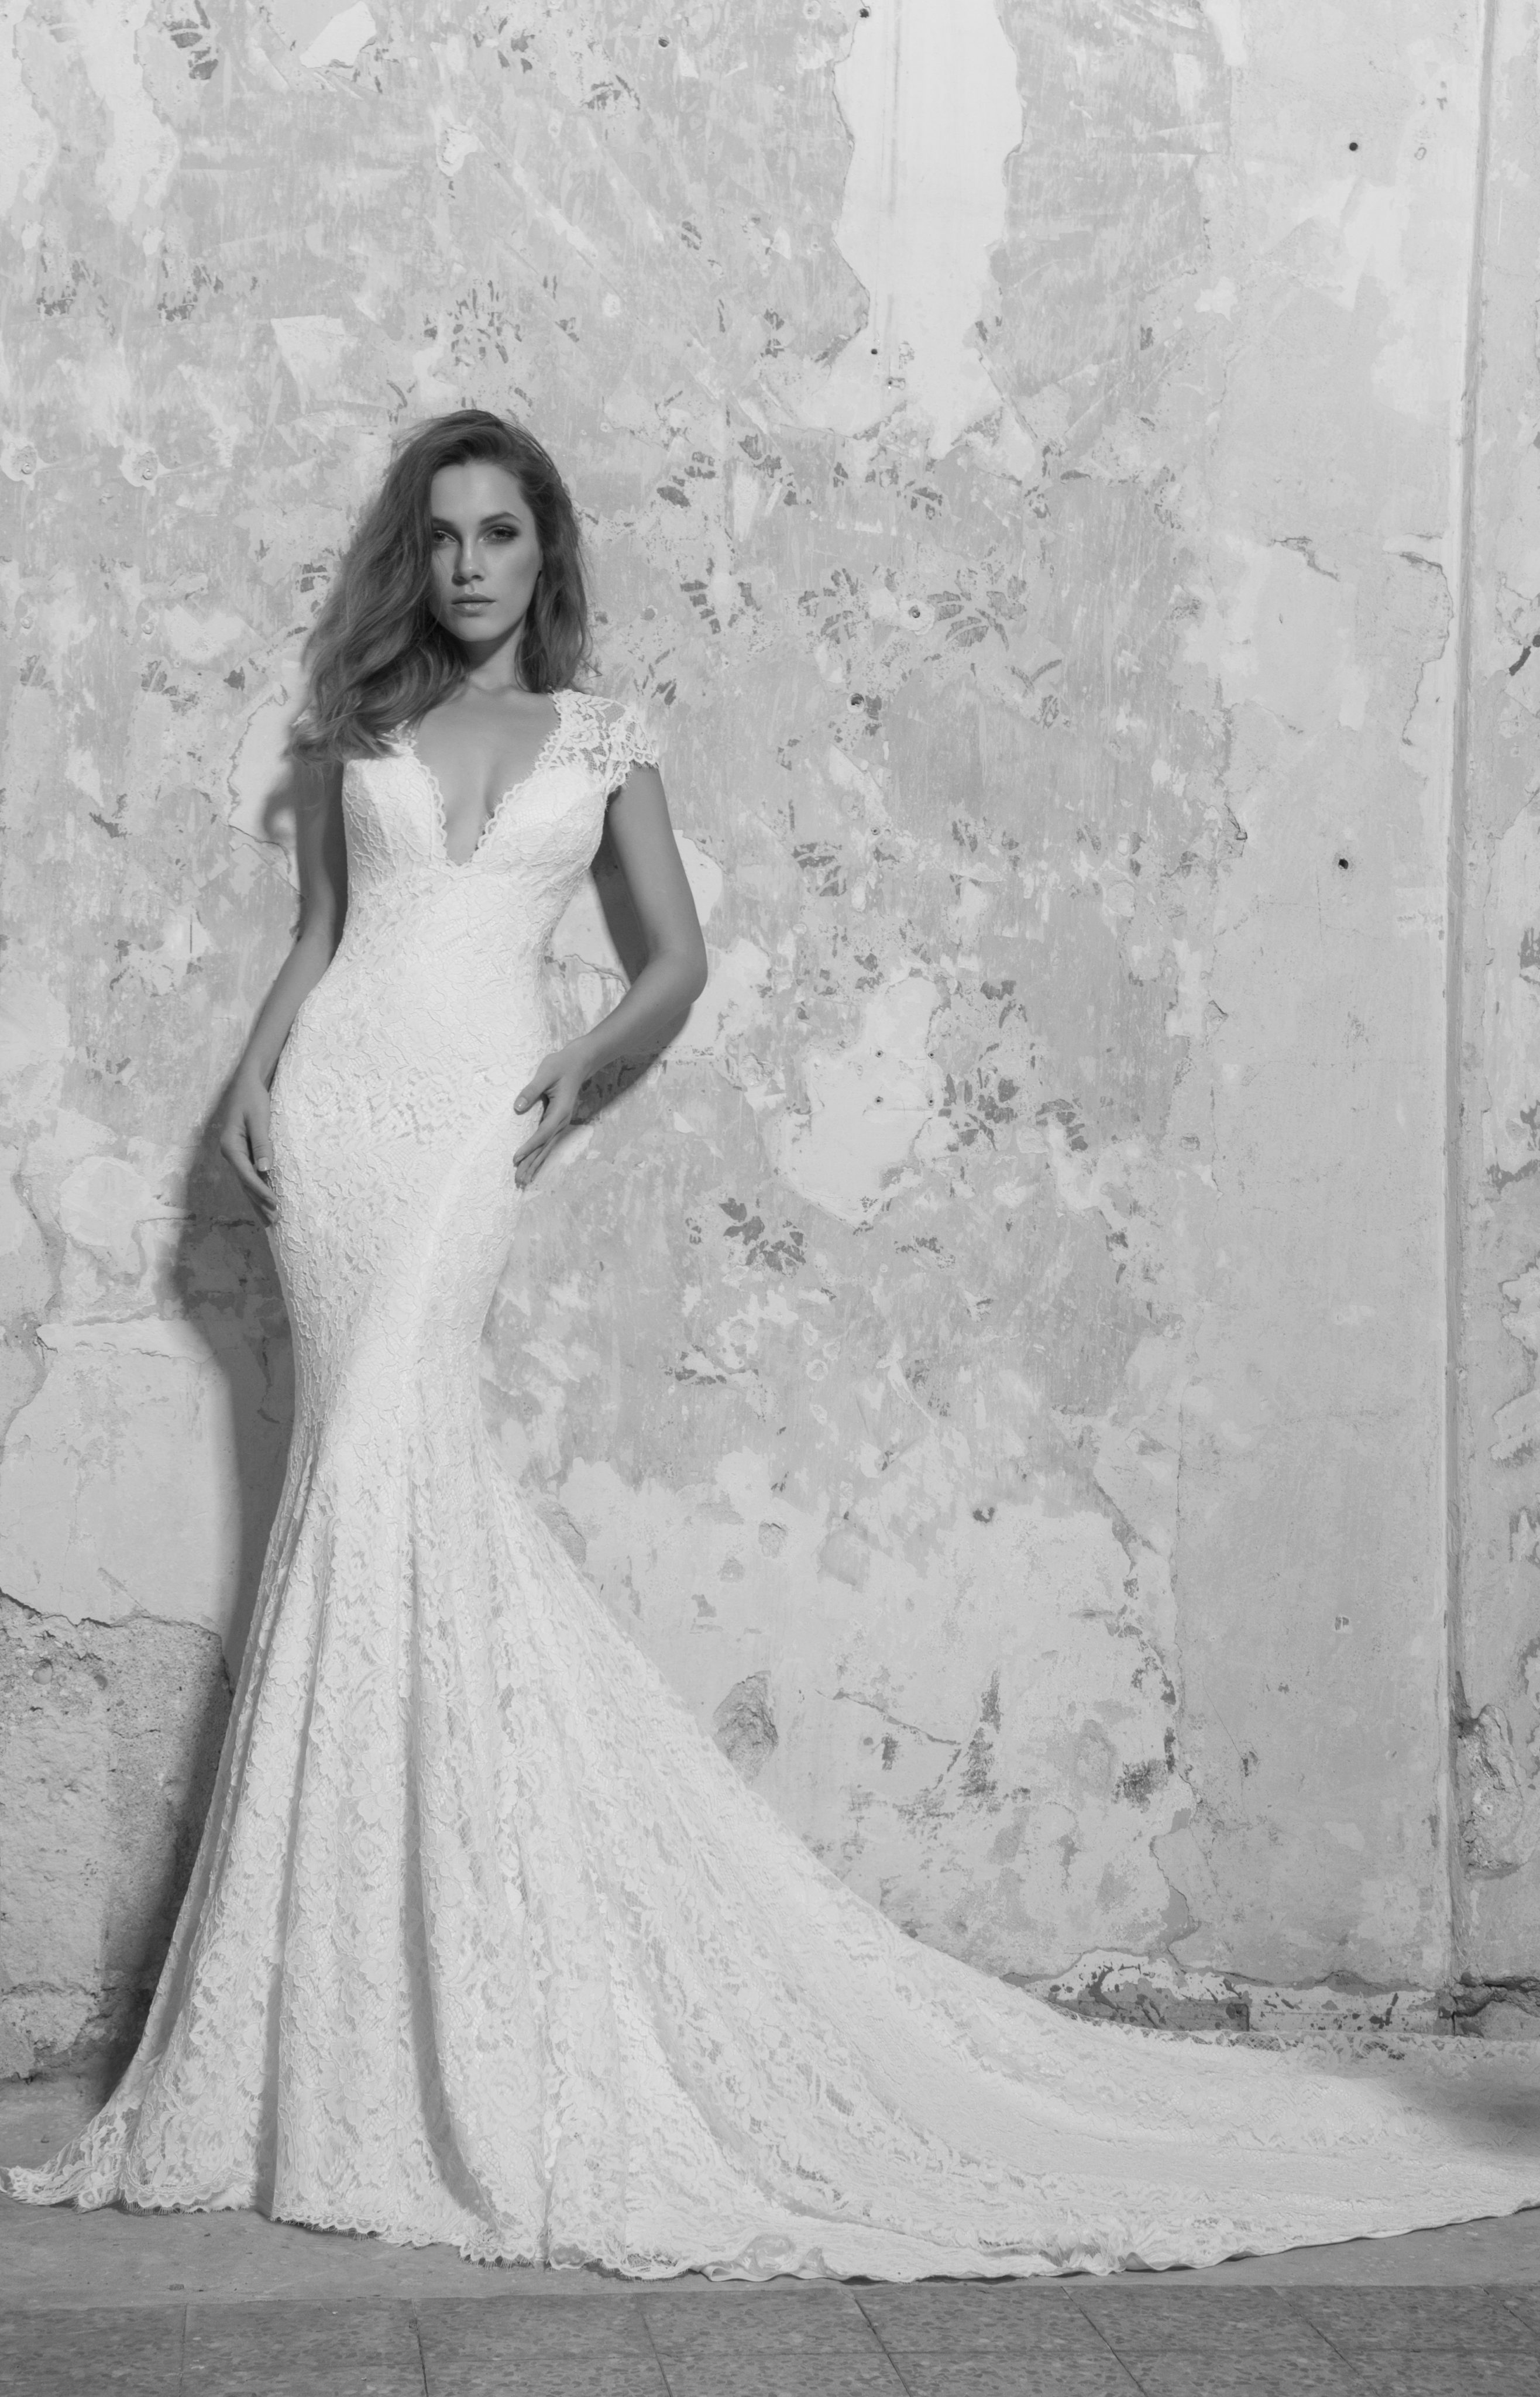 ccb3f347a6e7 Classic Fit And Flare Wedding Dress | Kleinfeld Bridal